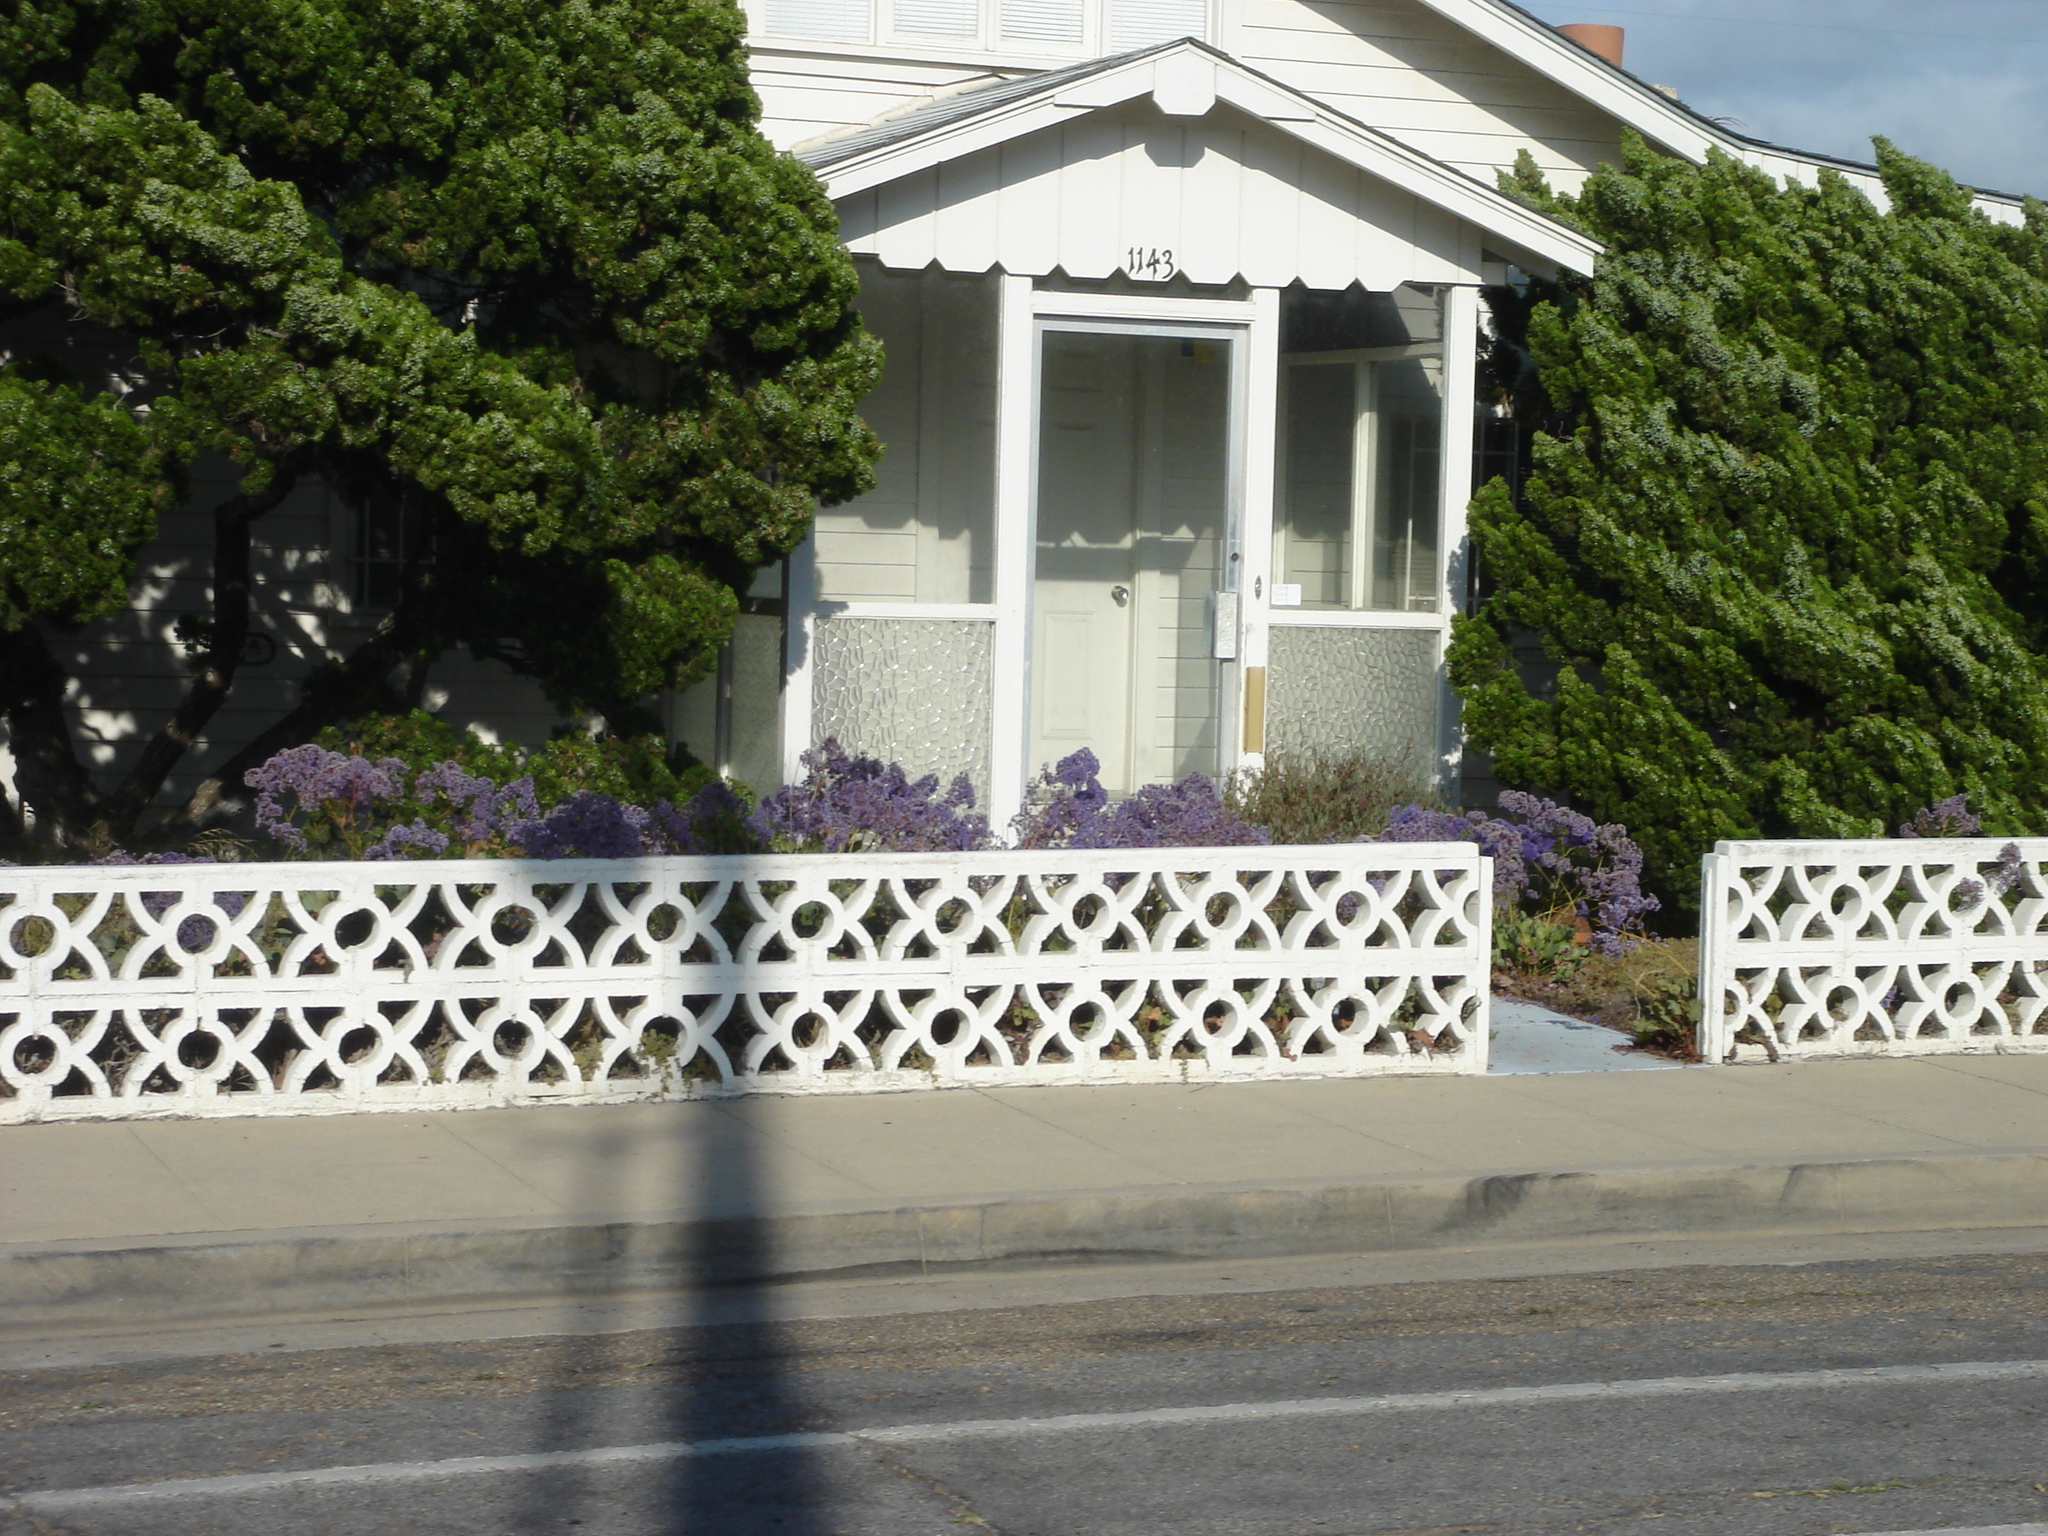 decor with concrete on of facade the palms avenue home block paradise architecture custom decorative eastern screen img